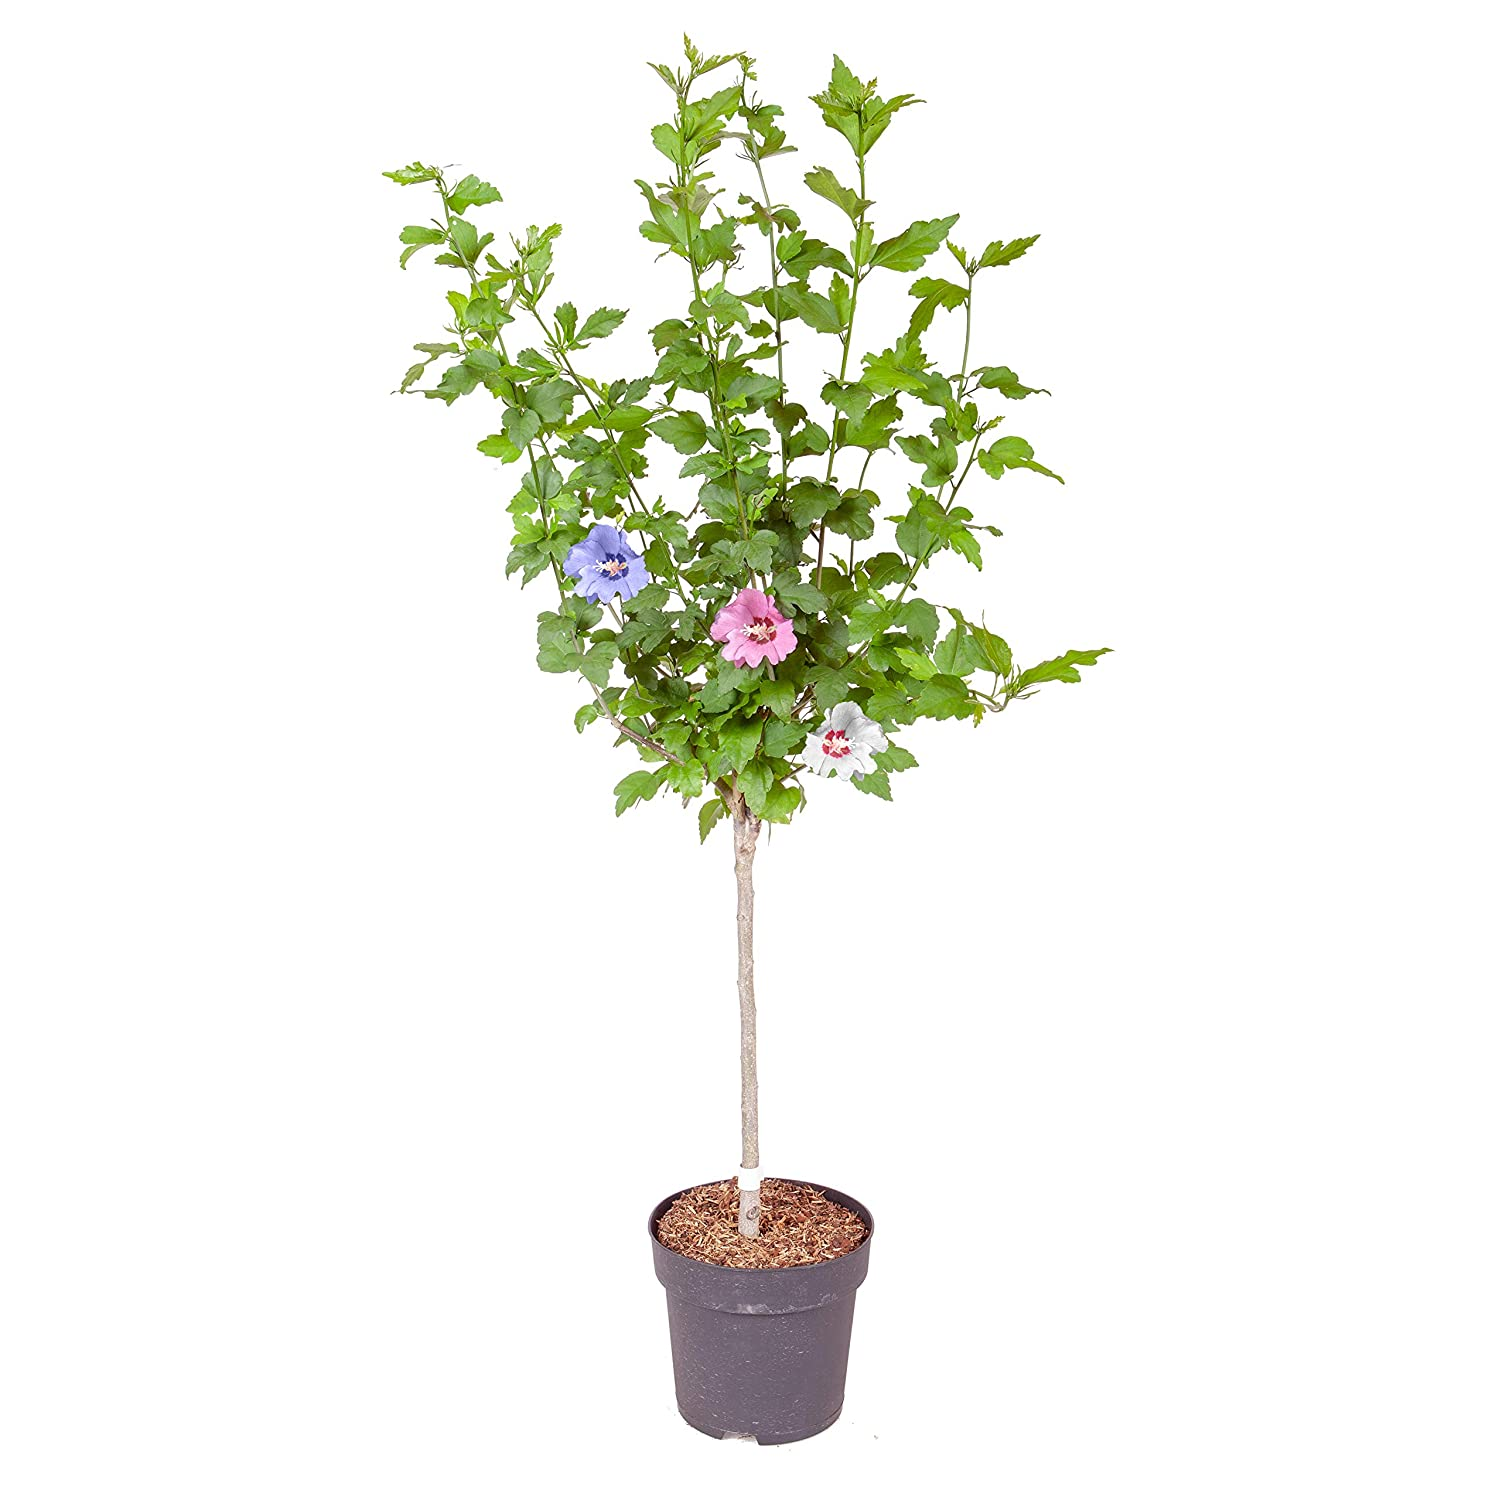 Yougarden Hibiscus Tricolour Plant 3 Colours In 1 Head Standard